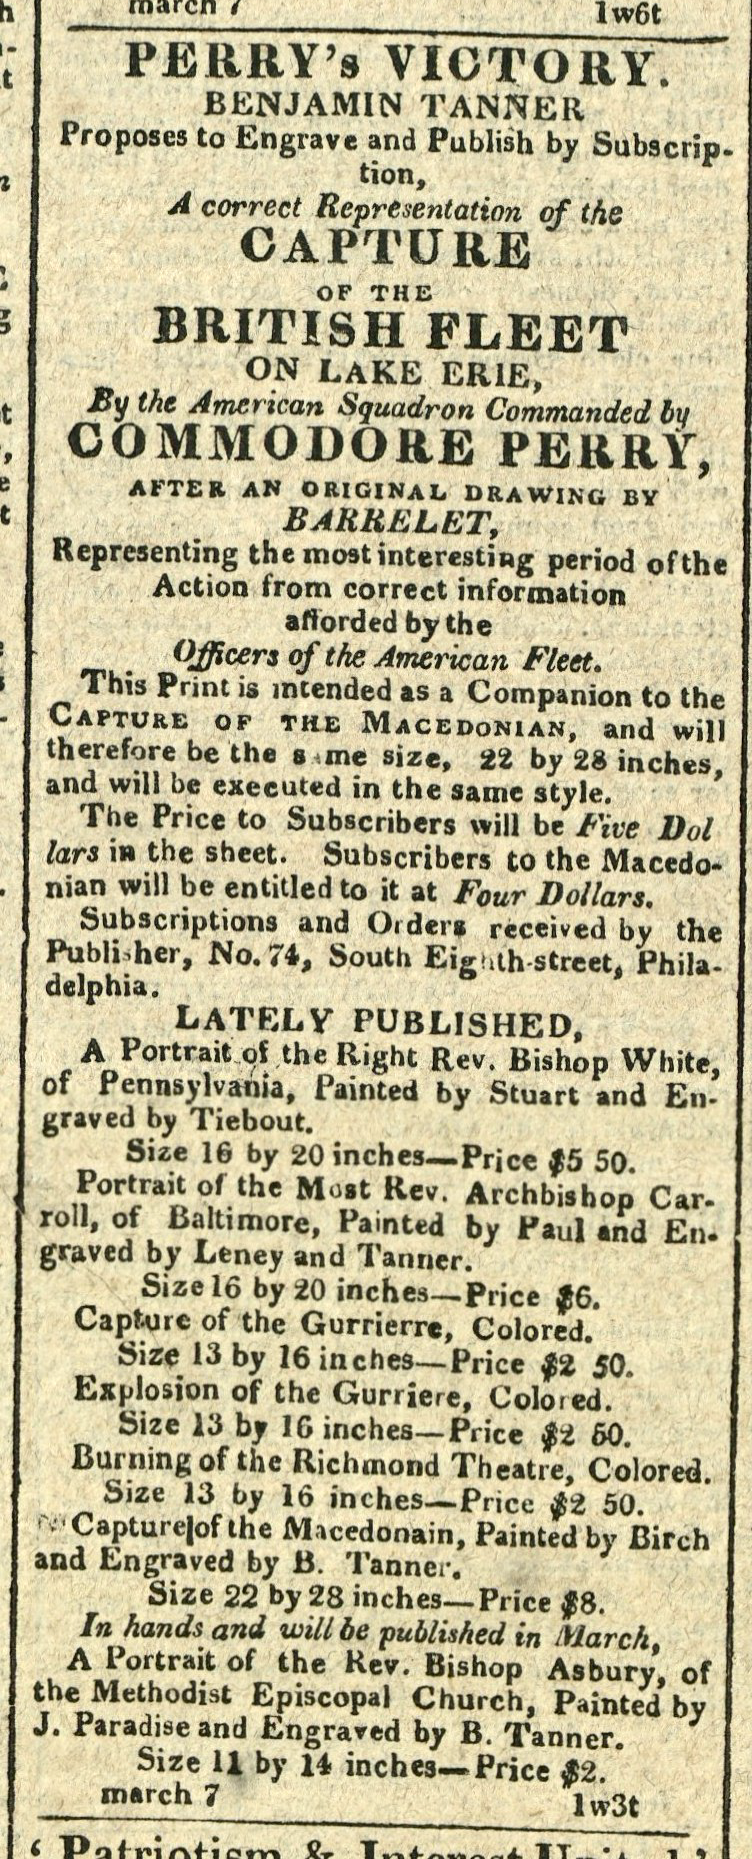 Advertisement: Perry's Victory. Benjamin Tanner Proposed to Engave and Publish by Subscription